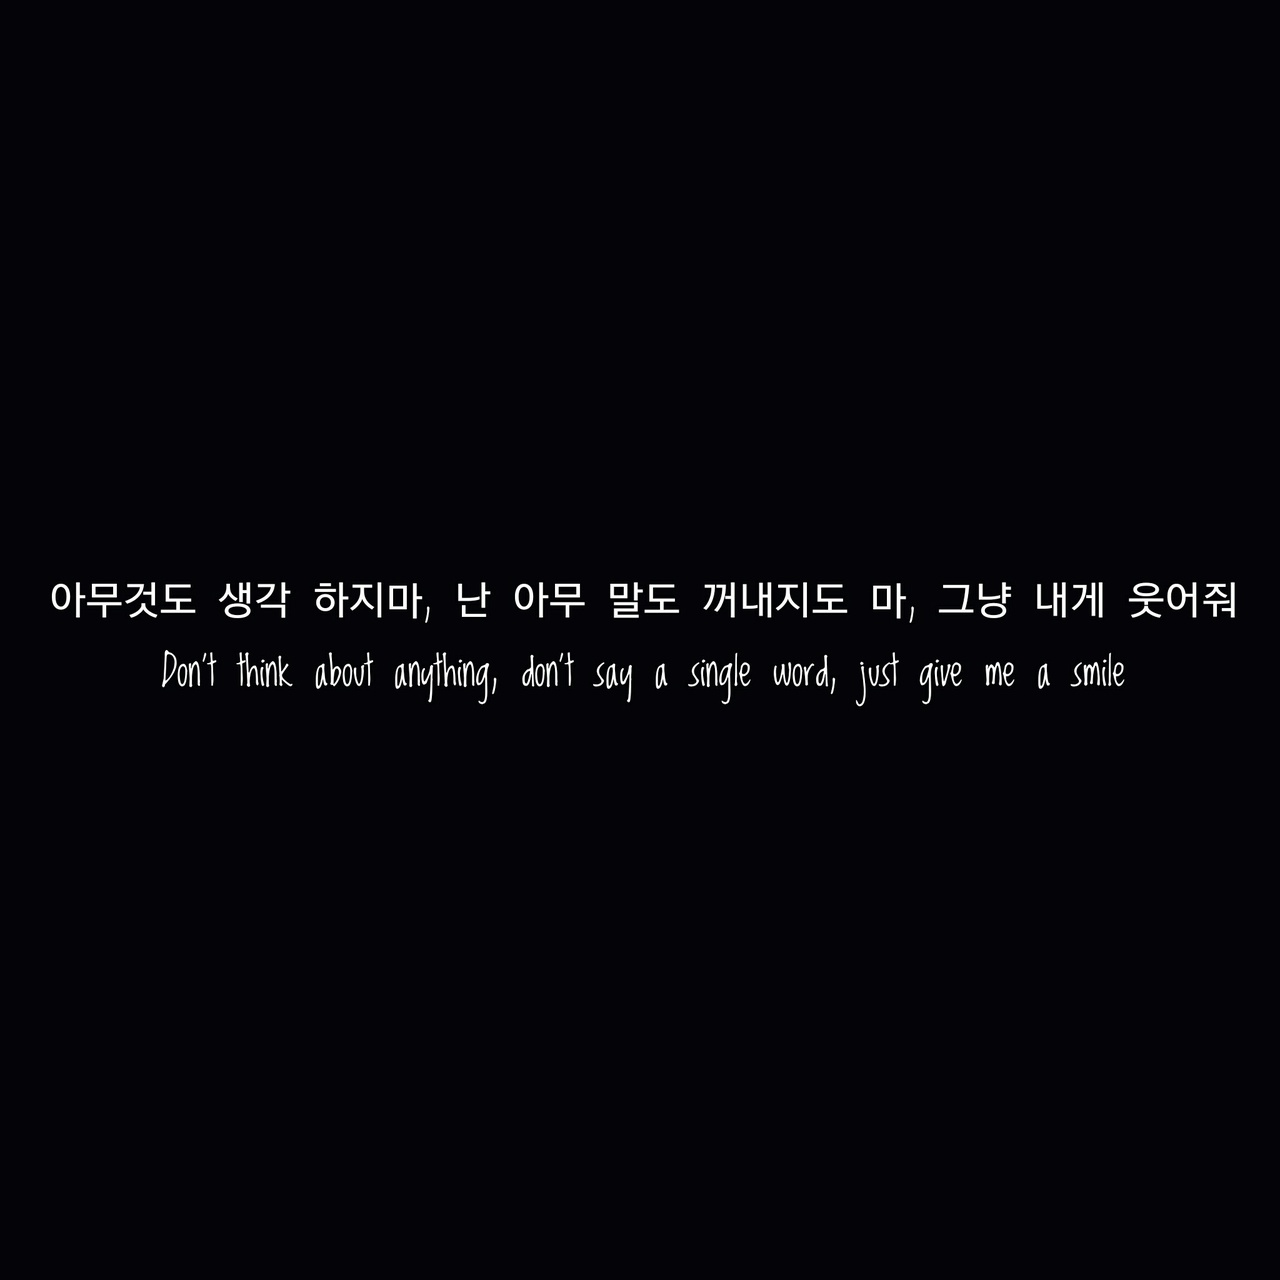 bts butterfly lyrics uploaded by taebaby on we heart it